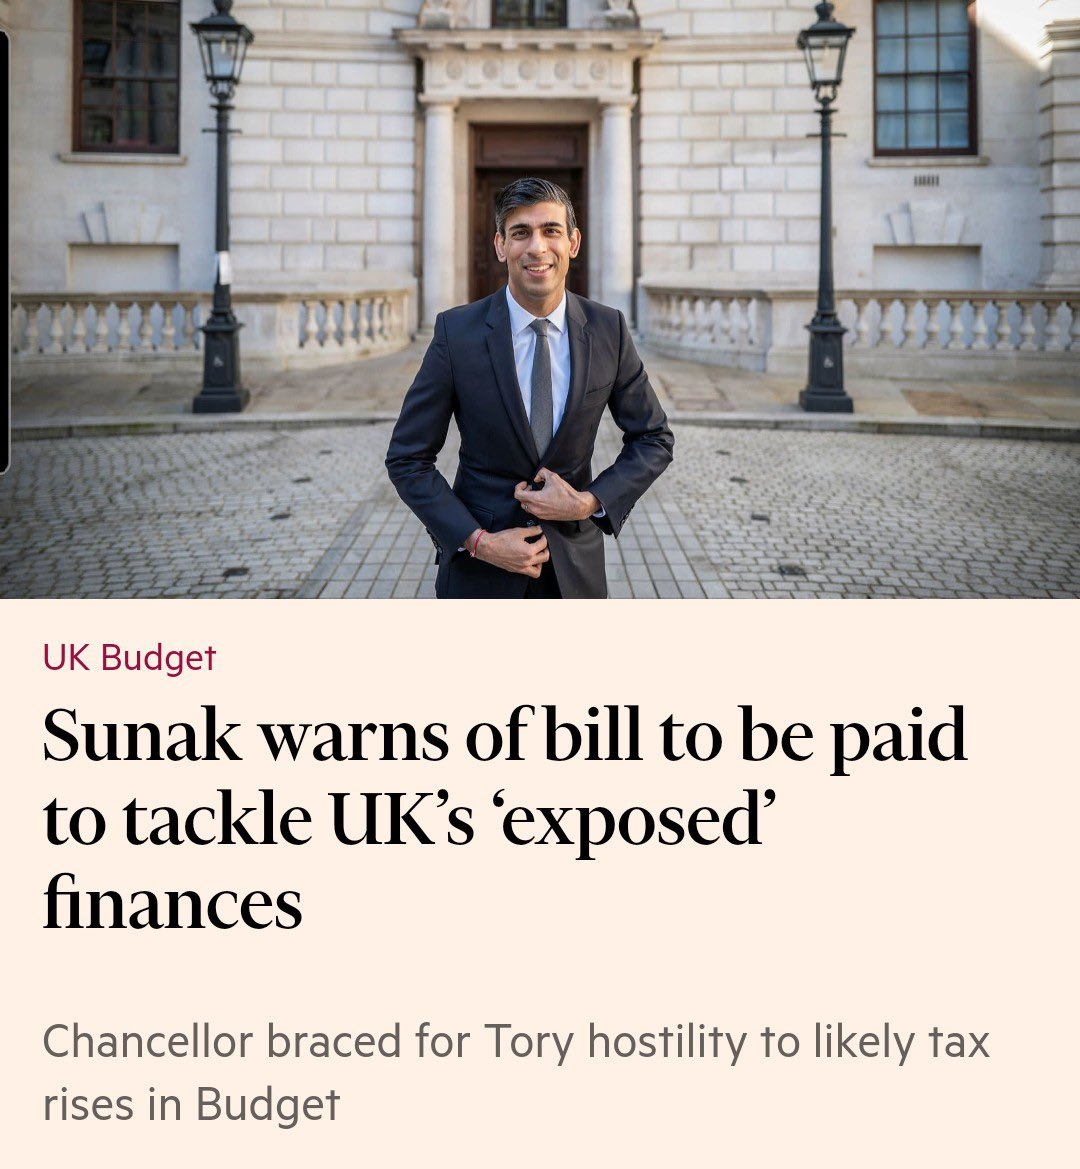 Rishi Sunak says UK taxpayers will need to pay more taxes  Why are 1 in 5 UK companies allowed to avoid taxes by using off shore tax structures?  Instead of more austerity, tax avoiding companies should pay their fair share https://t.co/dIfRIA5QkJ